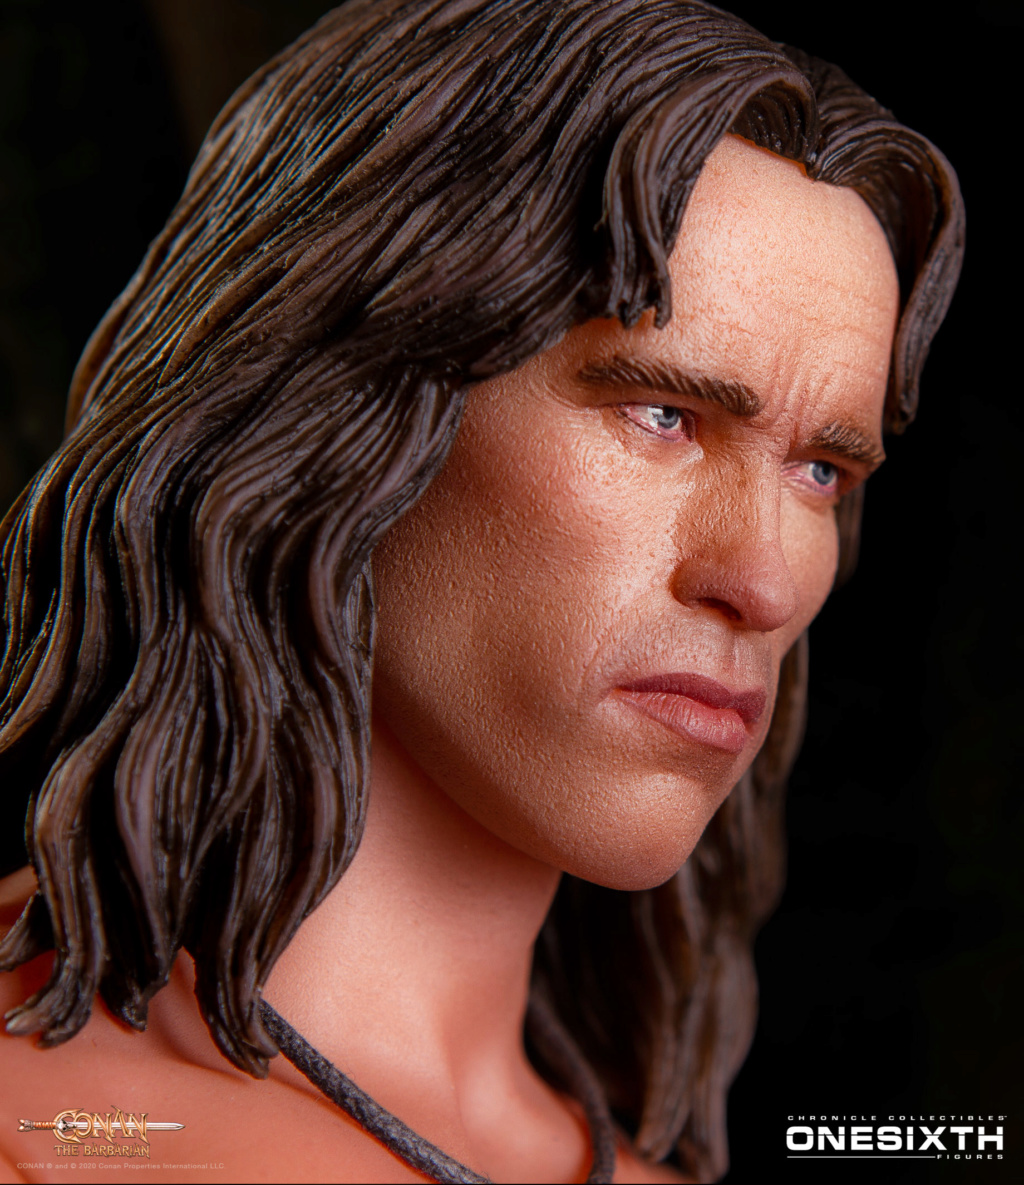 NEW PRODUCT: Chronicle Collectibles: OneSixth Conan the Barbarian Figure Chroni24